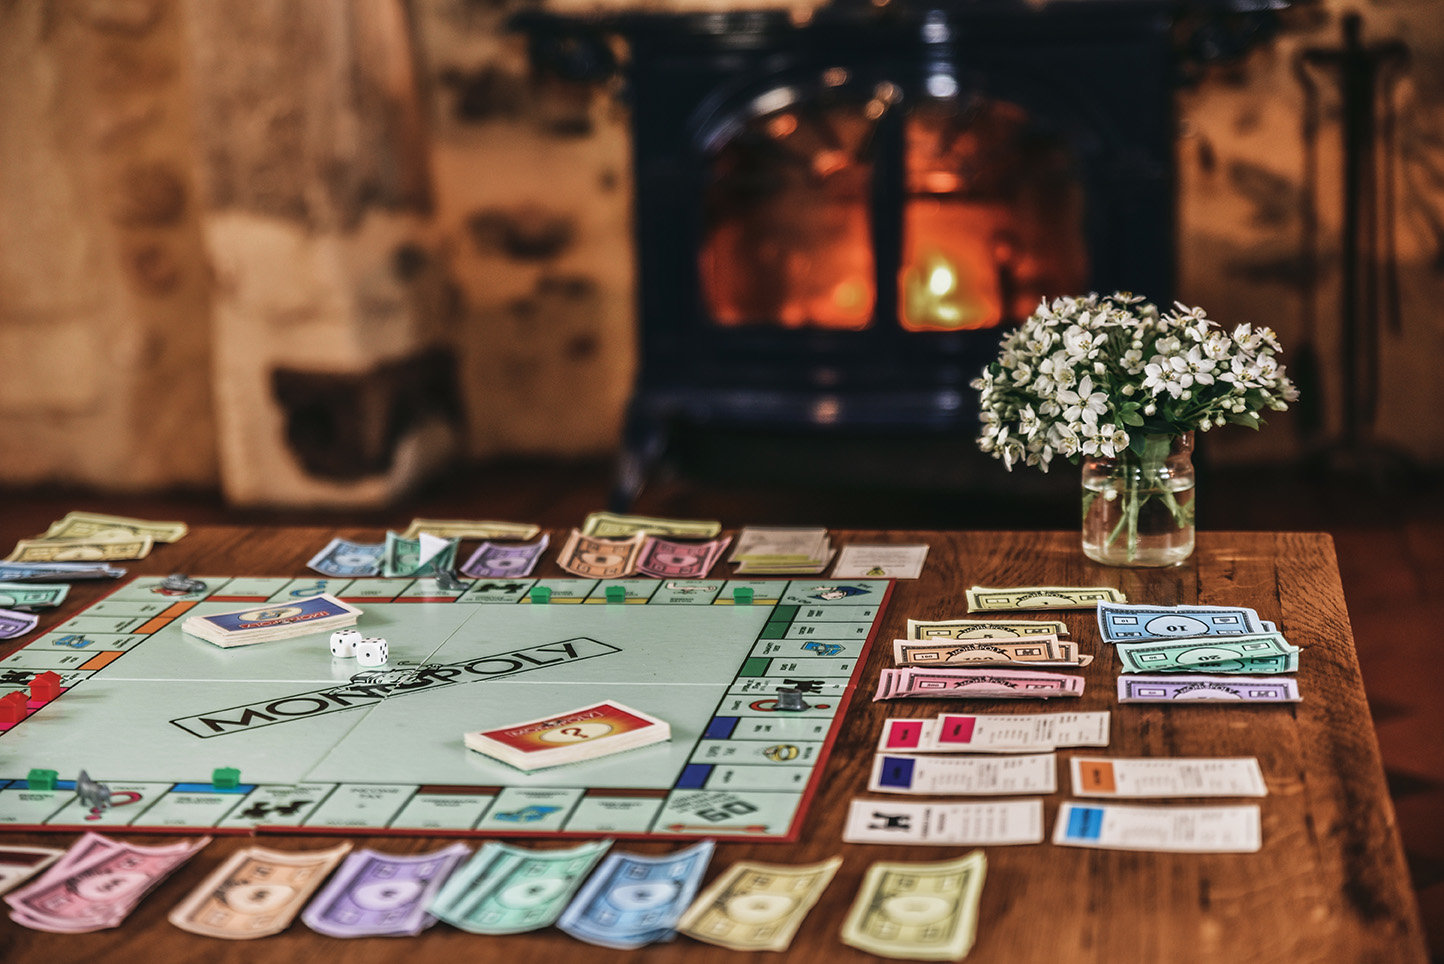 Playing Monopoly in front of a roaring fire at Le Mas, a luxury 5-bedroom family holiday home in the Dordogne